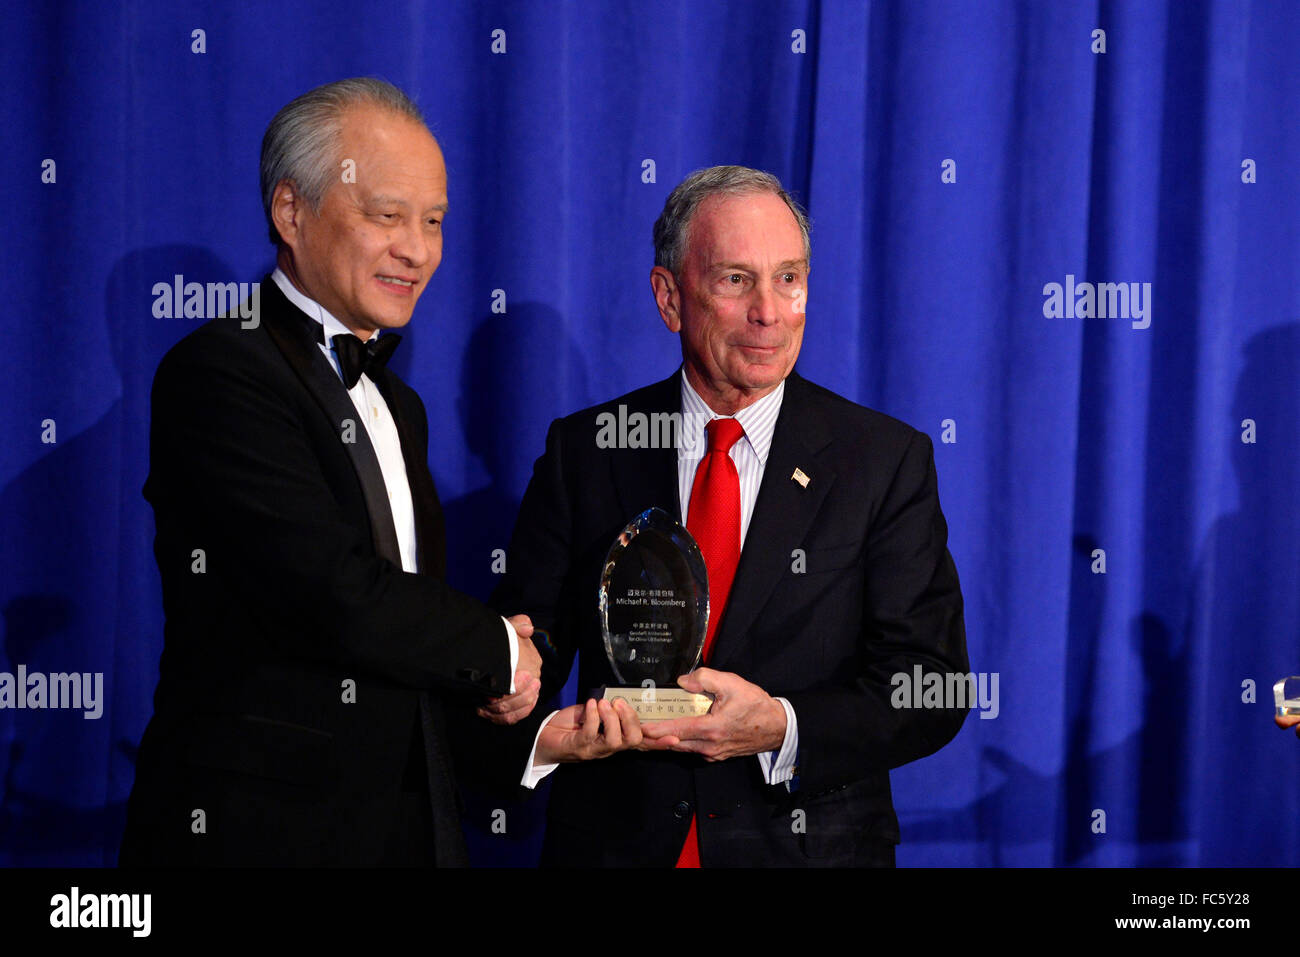 New York, USA. 19th Jan, 2016. Chinese Ambassador to the United States Cui Tiankai (L) presents the trophy of the Stock Photo